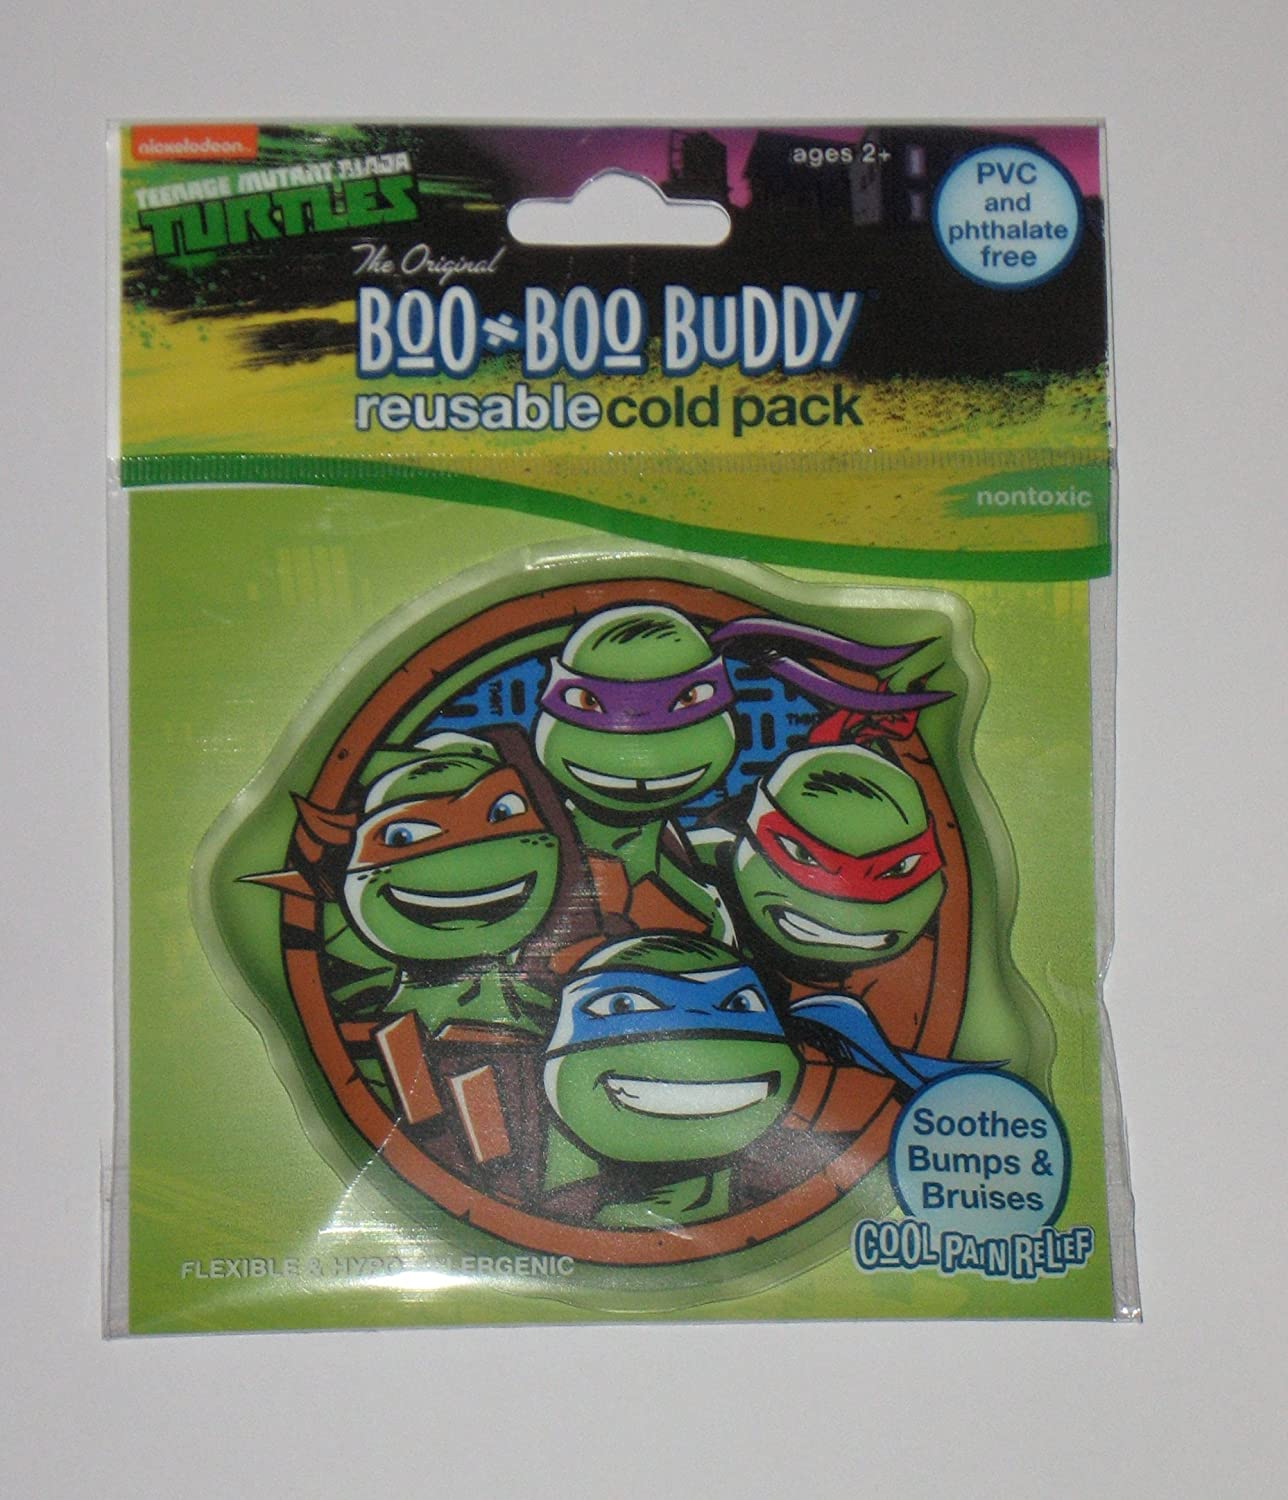 Boo-Boo Buddy Reusable Cold Pack, Nickelodeon(Teenage Ninja Turtles)